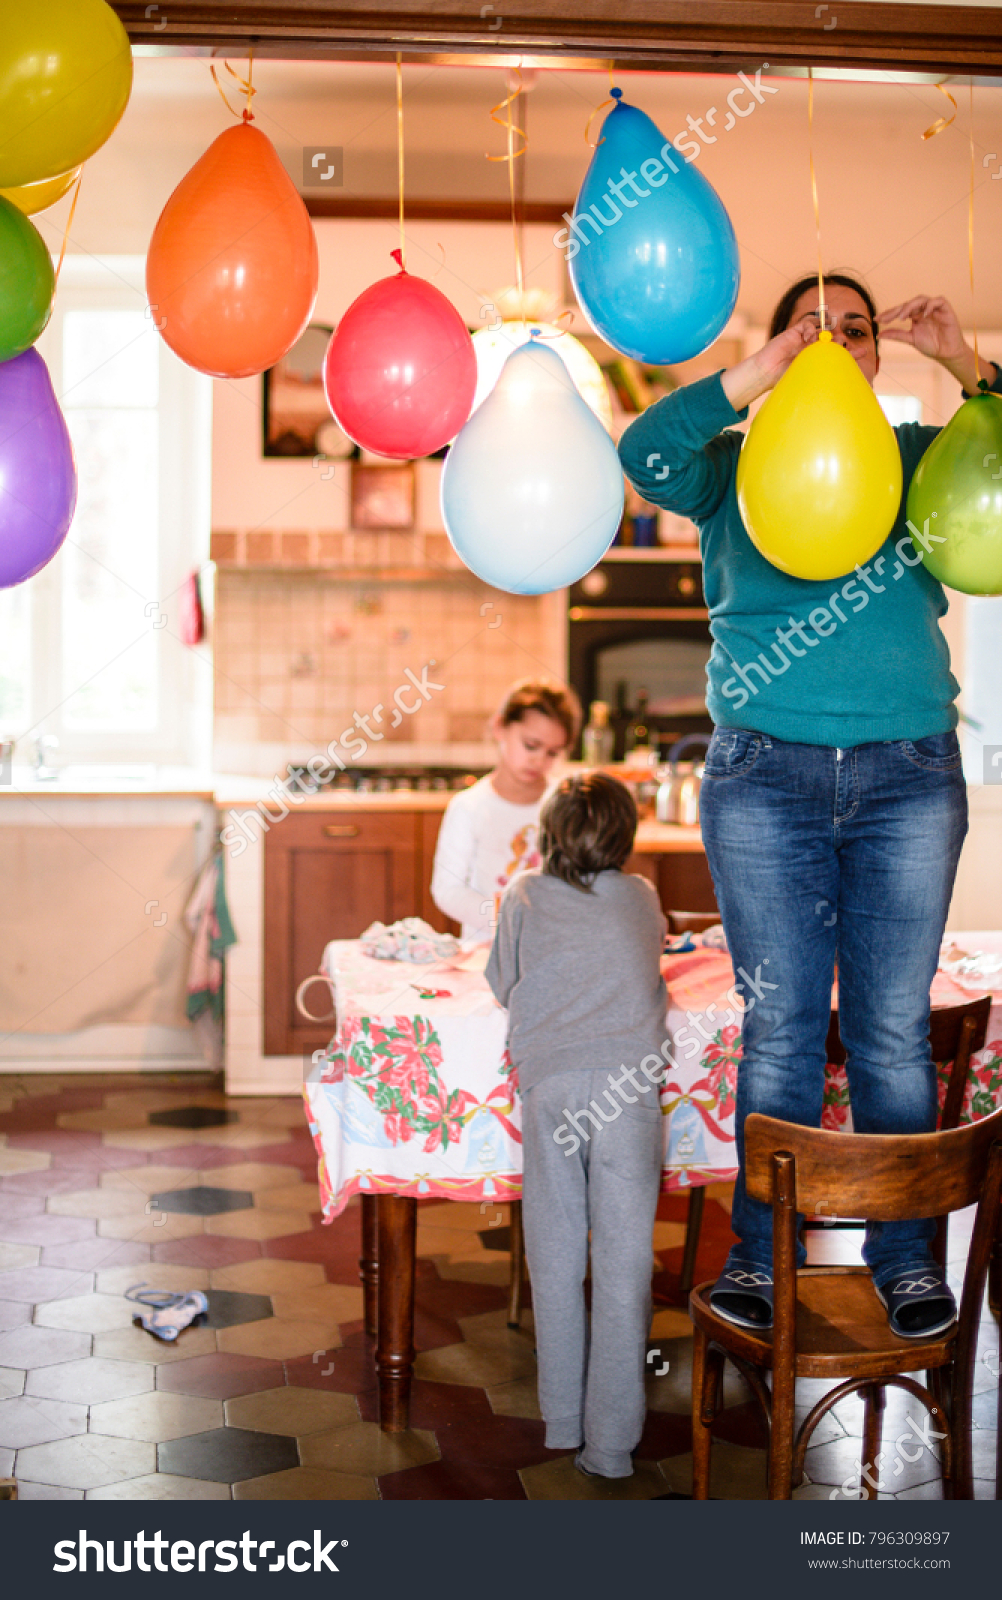 Mother With Children Hang Colorful Balloons For Birthday Party In Her Home Standing On